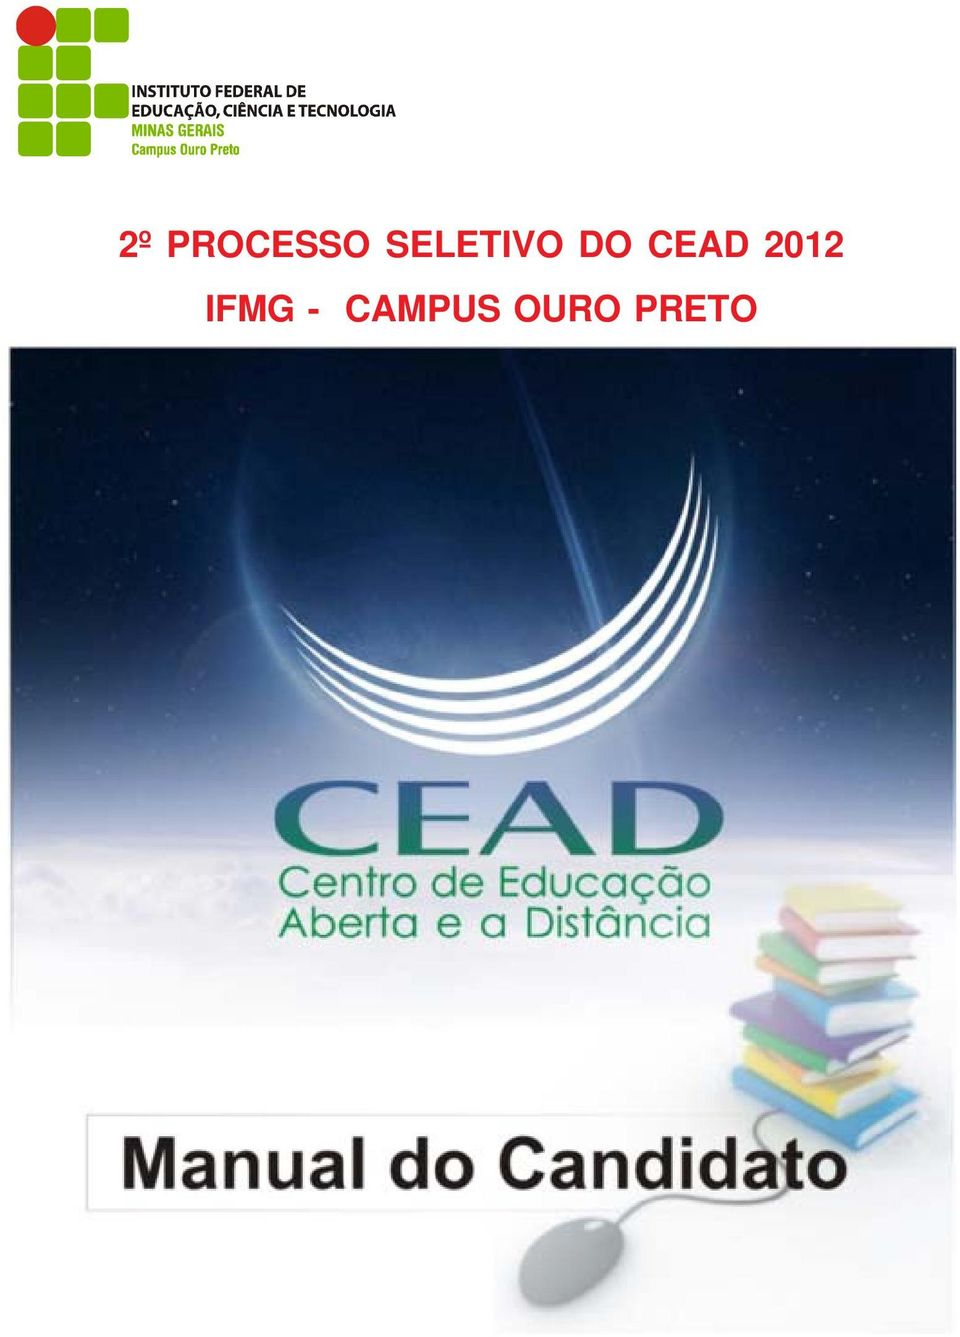 CEAD 2012 IFMG